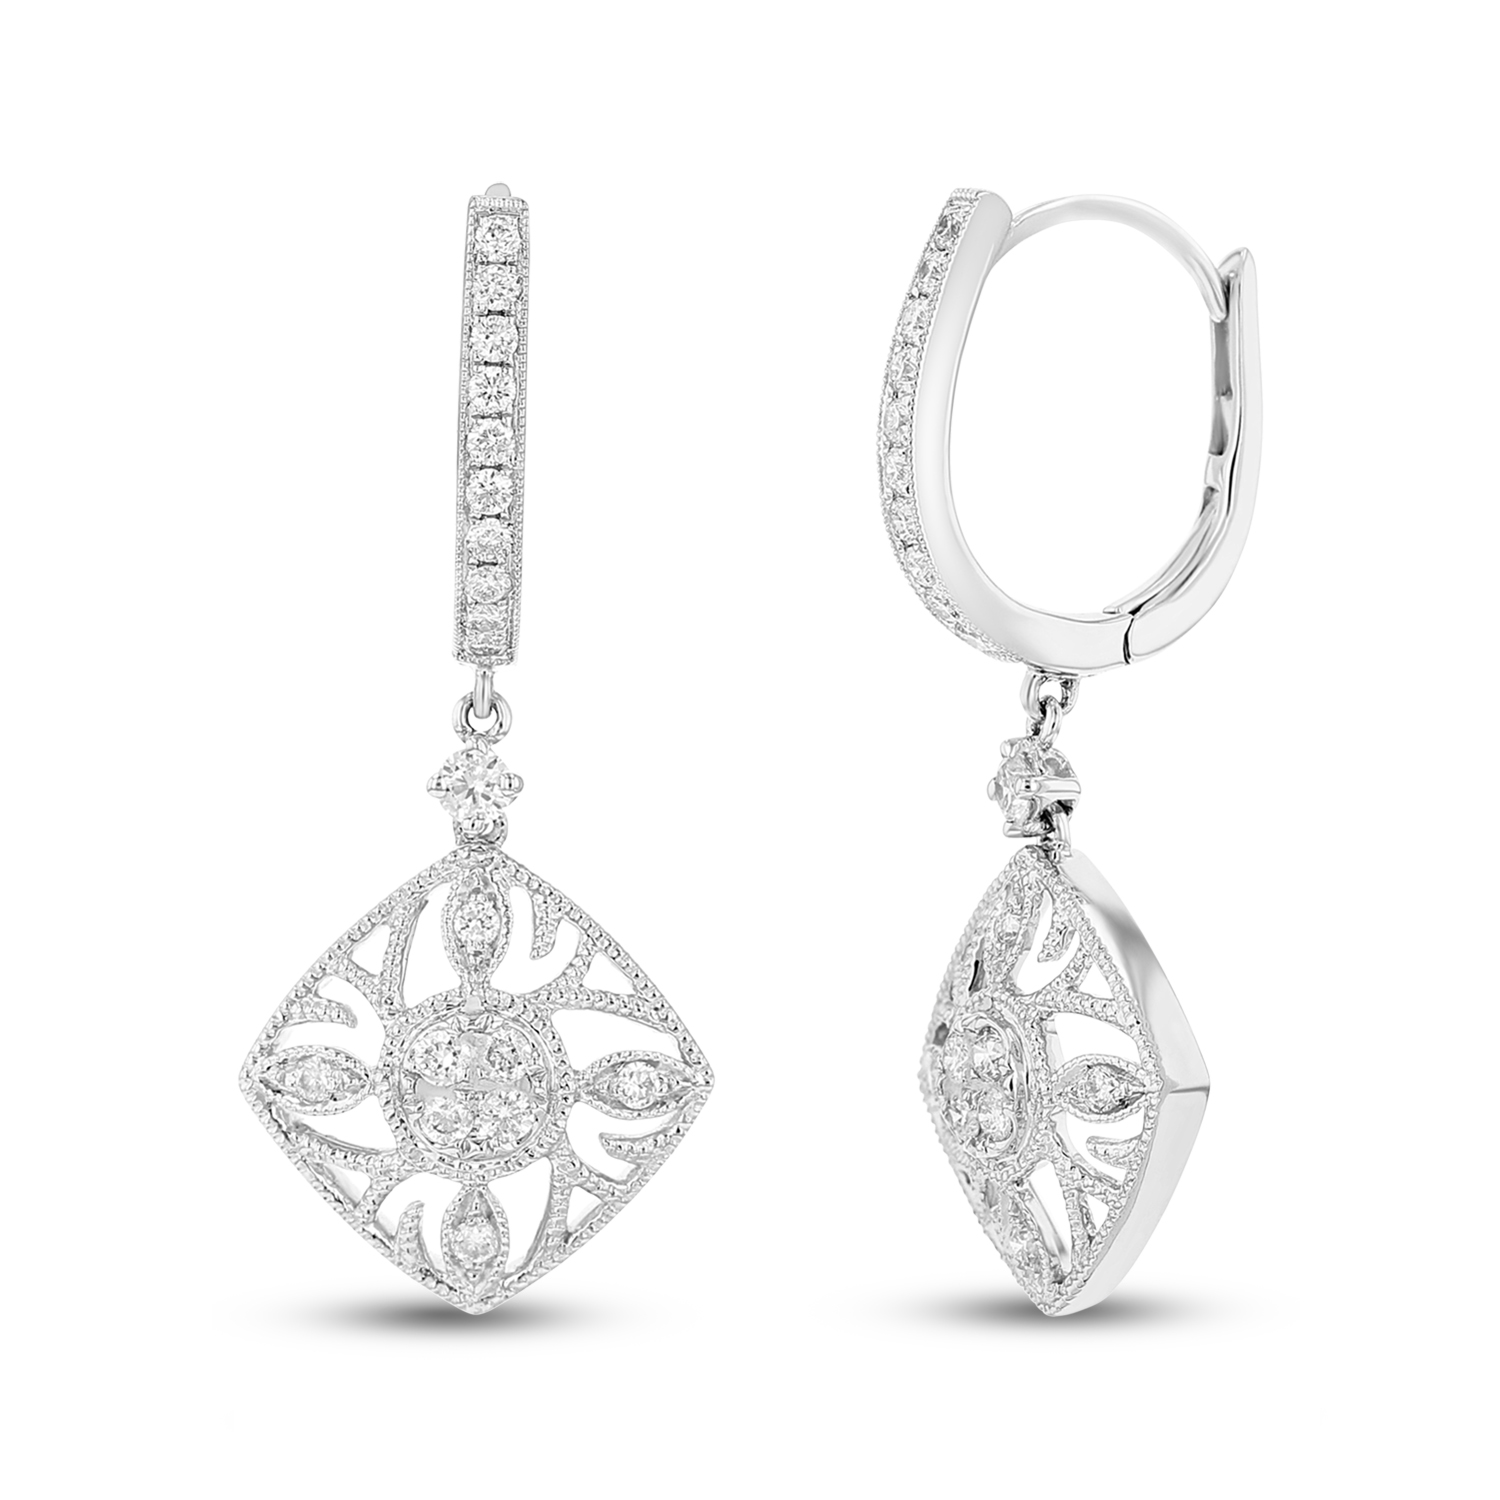 View 0.50ctw Diamonds Fashion Earrings in 18k White Gold